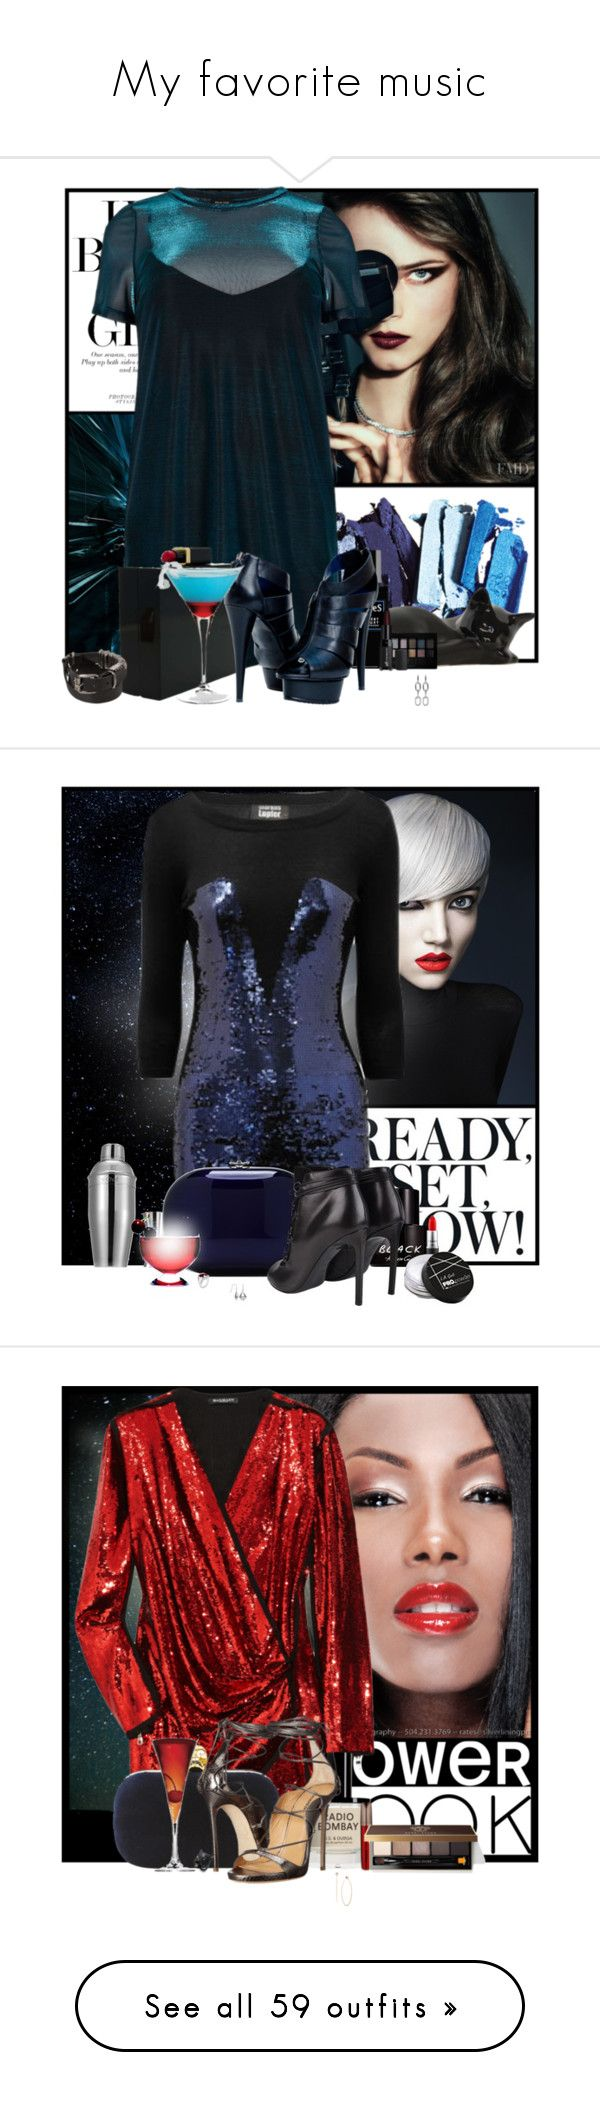 """My favorite music"" by pusja76 ❤ liked on Polyvore featuring River Island, Lulu Guinness, Maybelline, Robert Piguet, Paolo Shoes, e.l.f., Alexander Wang, Ann Demeulemeester, Jeffrey Levinson and Kenneth Cole"